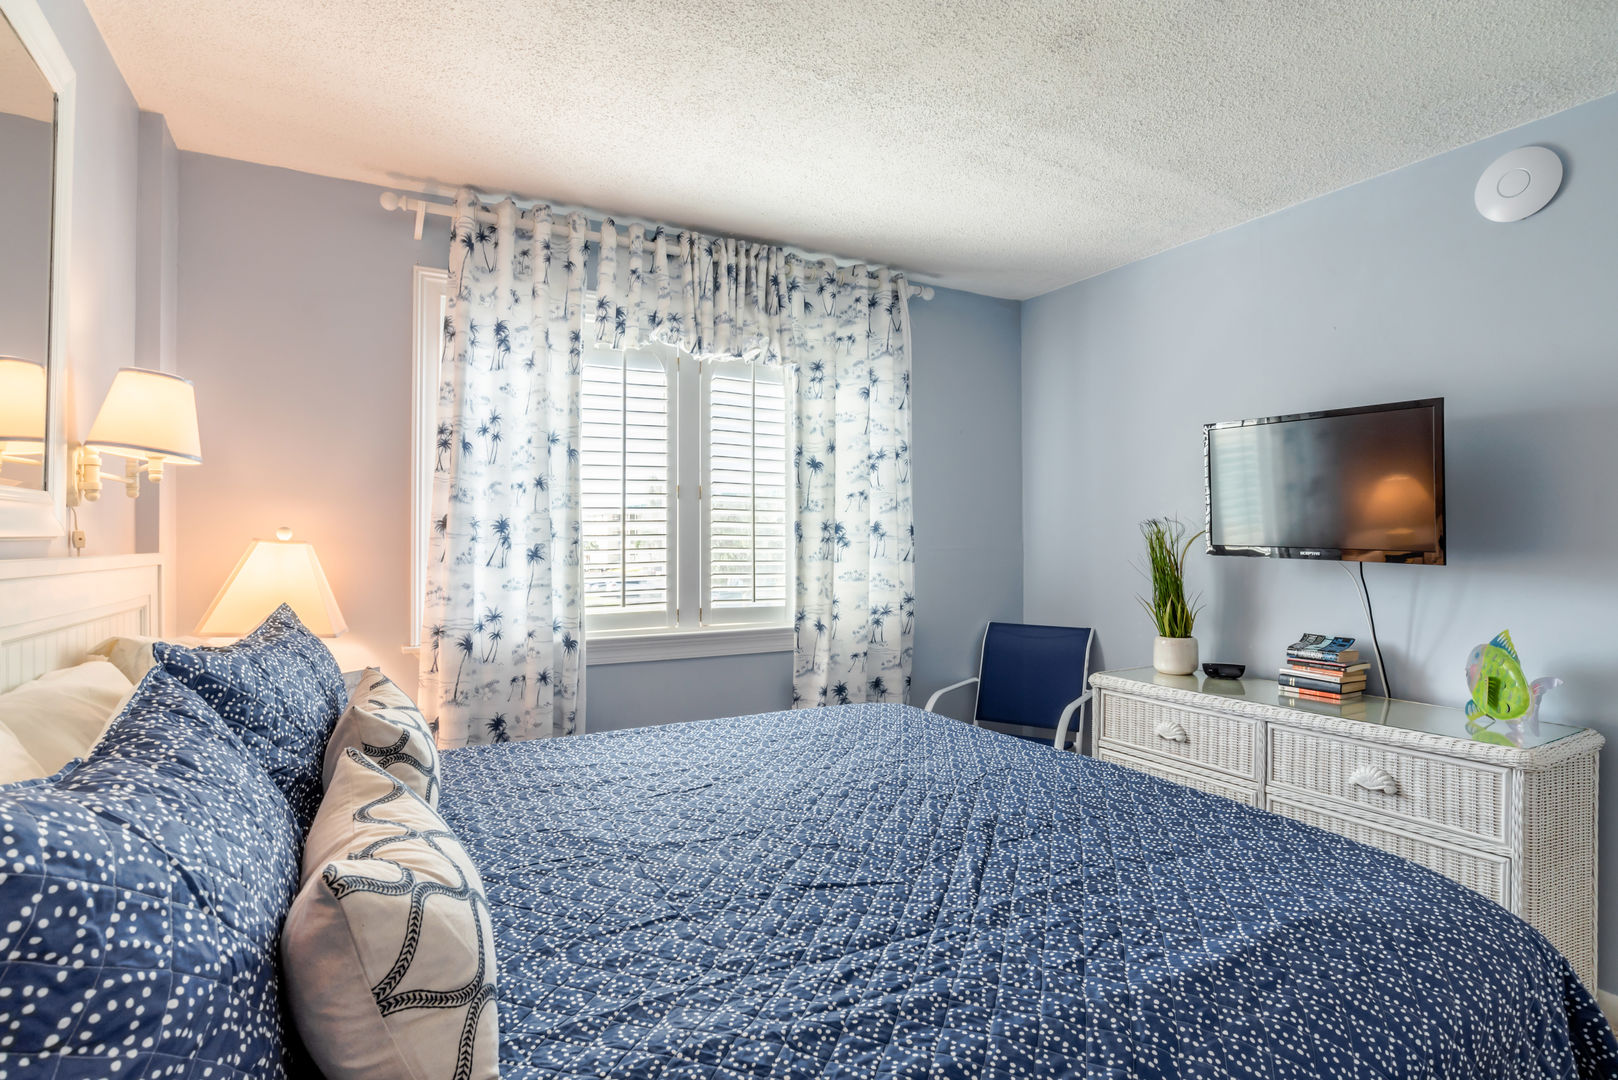 Large TV, dresser, wall-mounted TV, and nightstands of this rental.